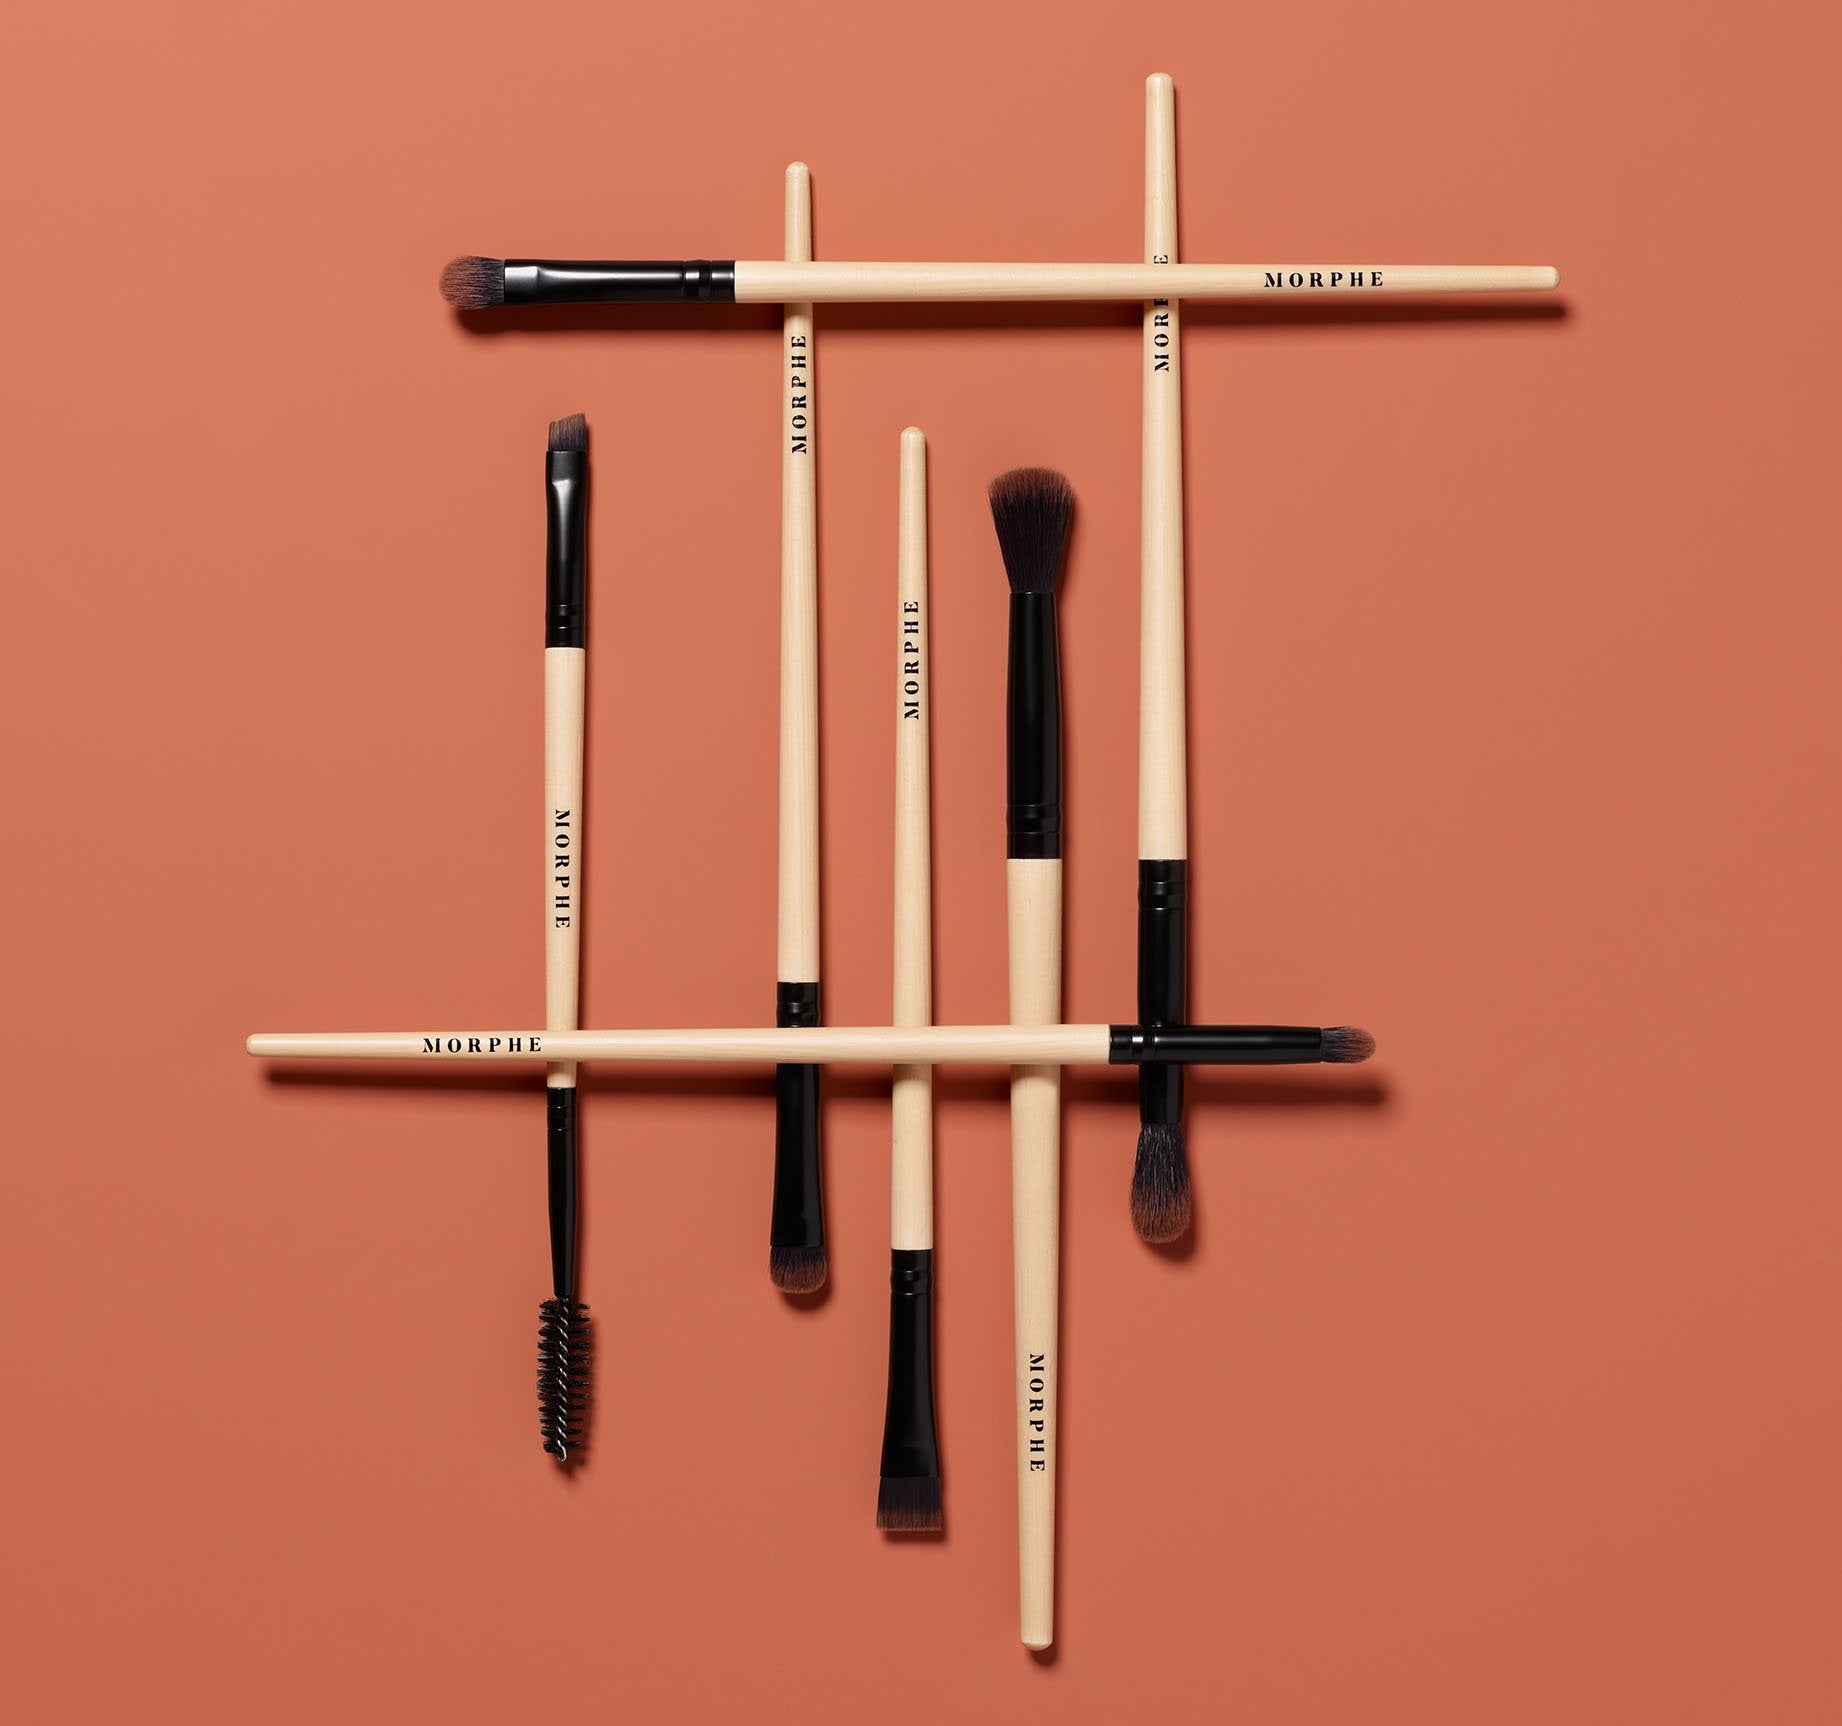 EARTH TO BABE 7-PIECE BAMBOO EYE BRUSH SET, view larger image